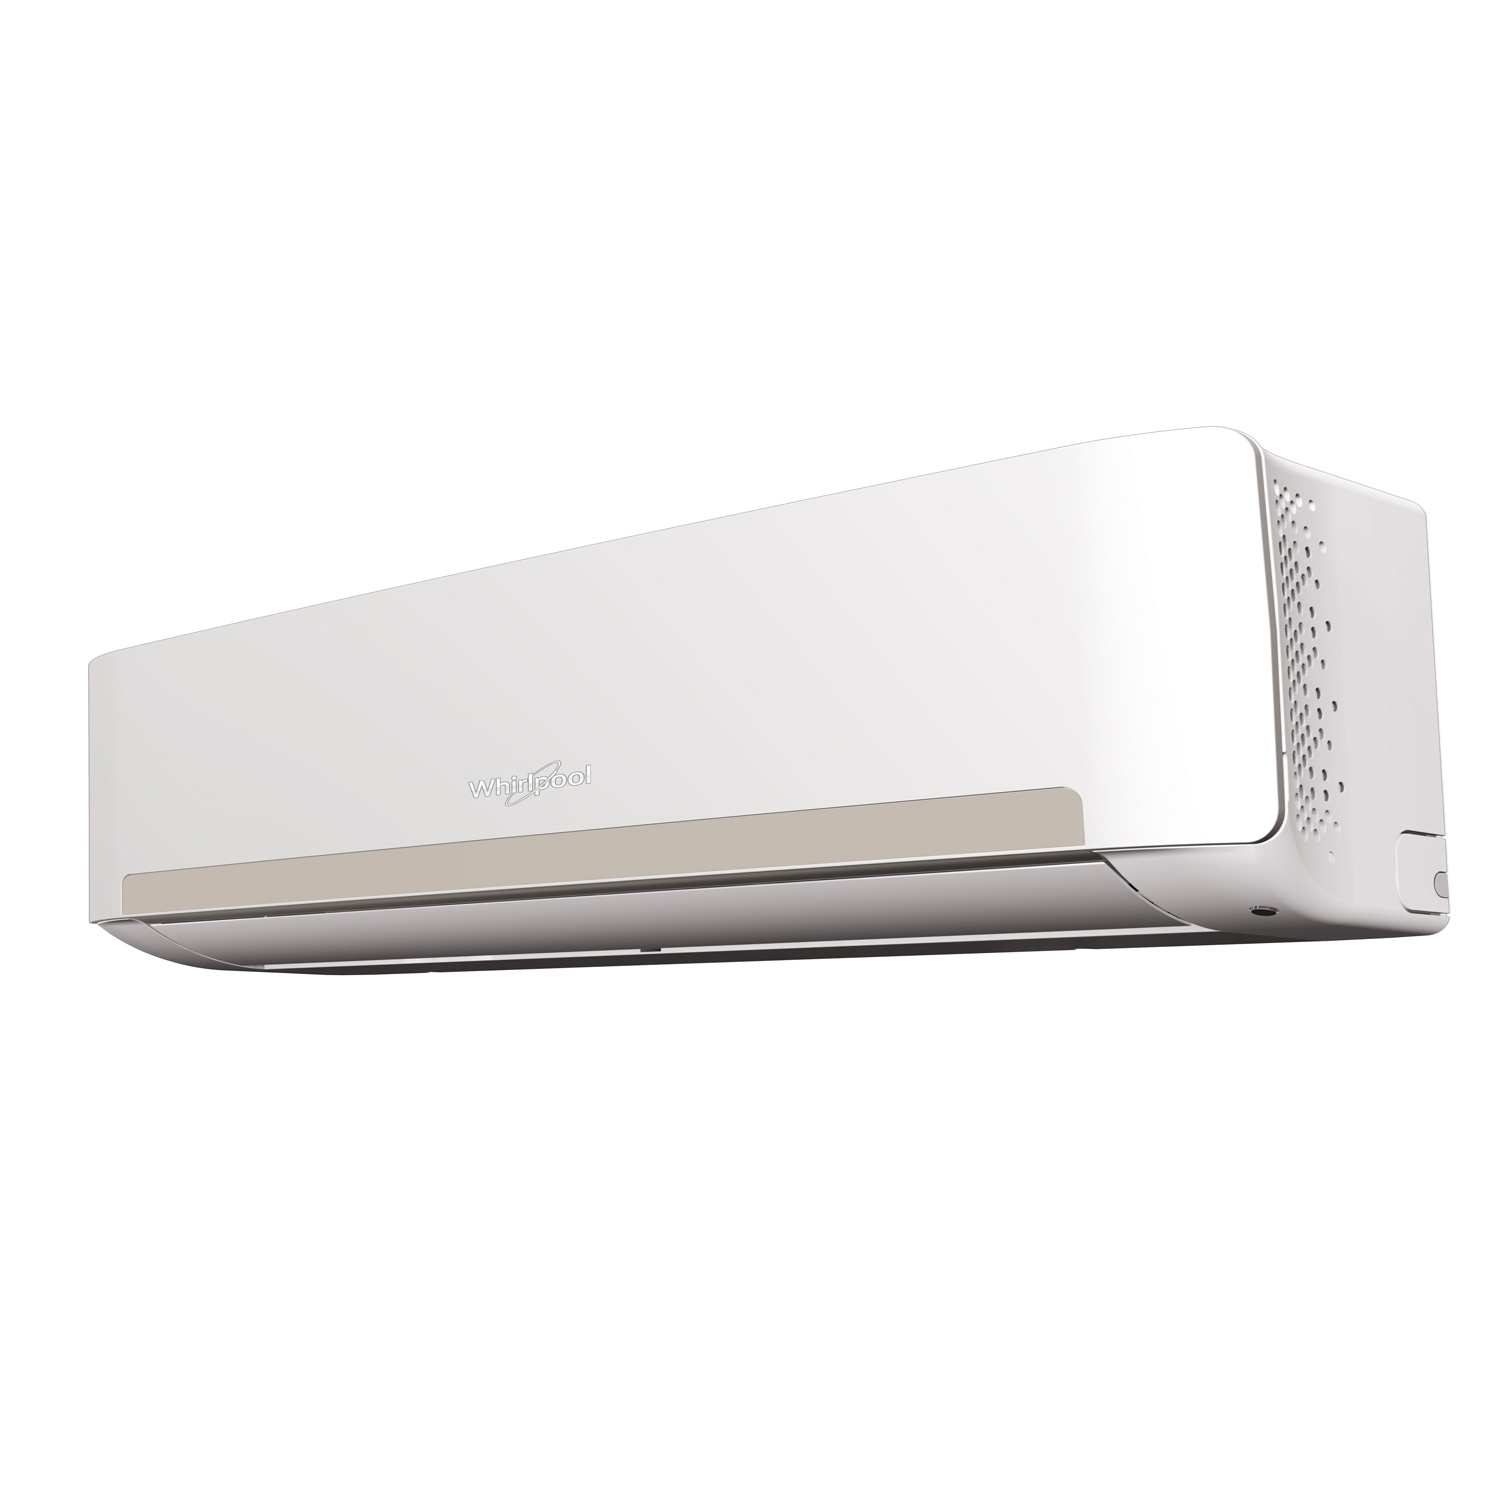 whirlpool Air Conditioner 1.5 ton- SPOW 418